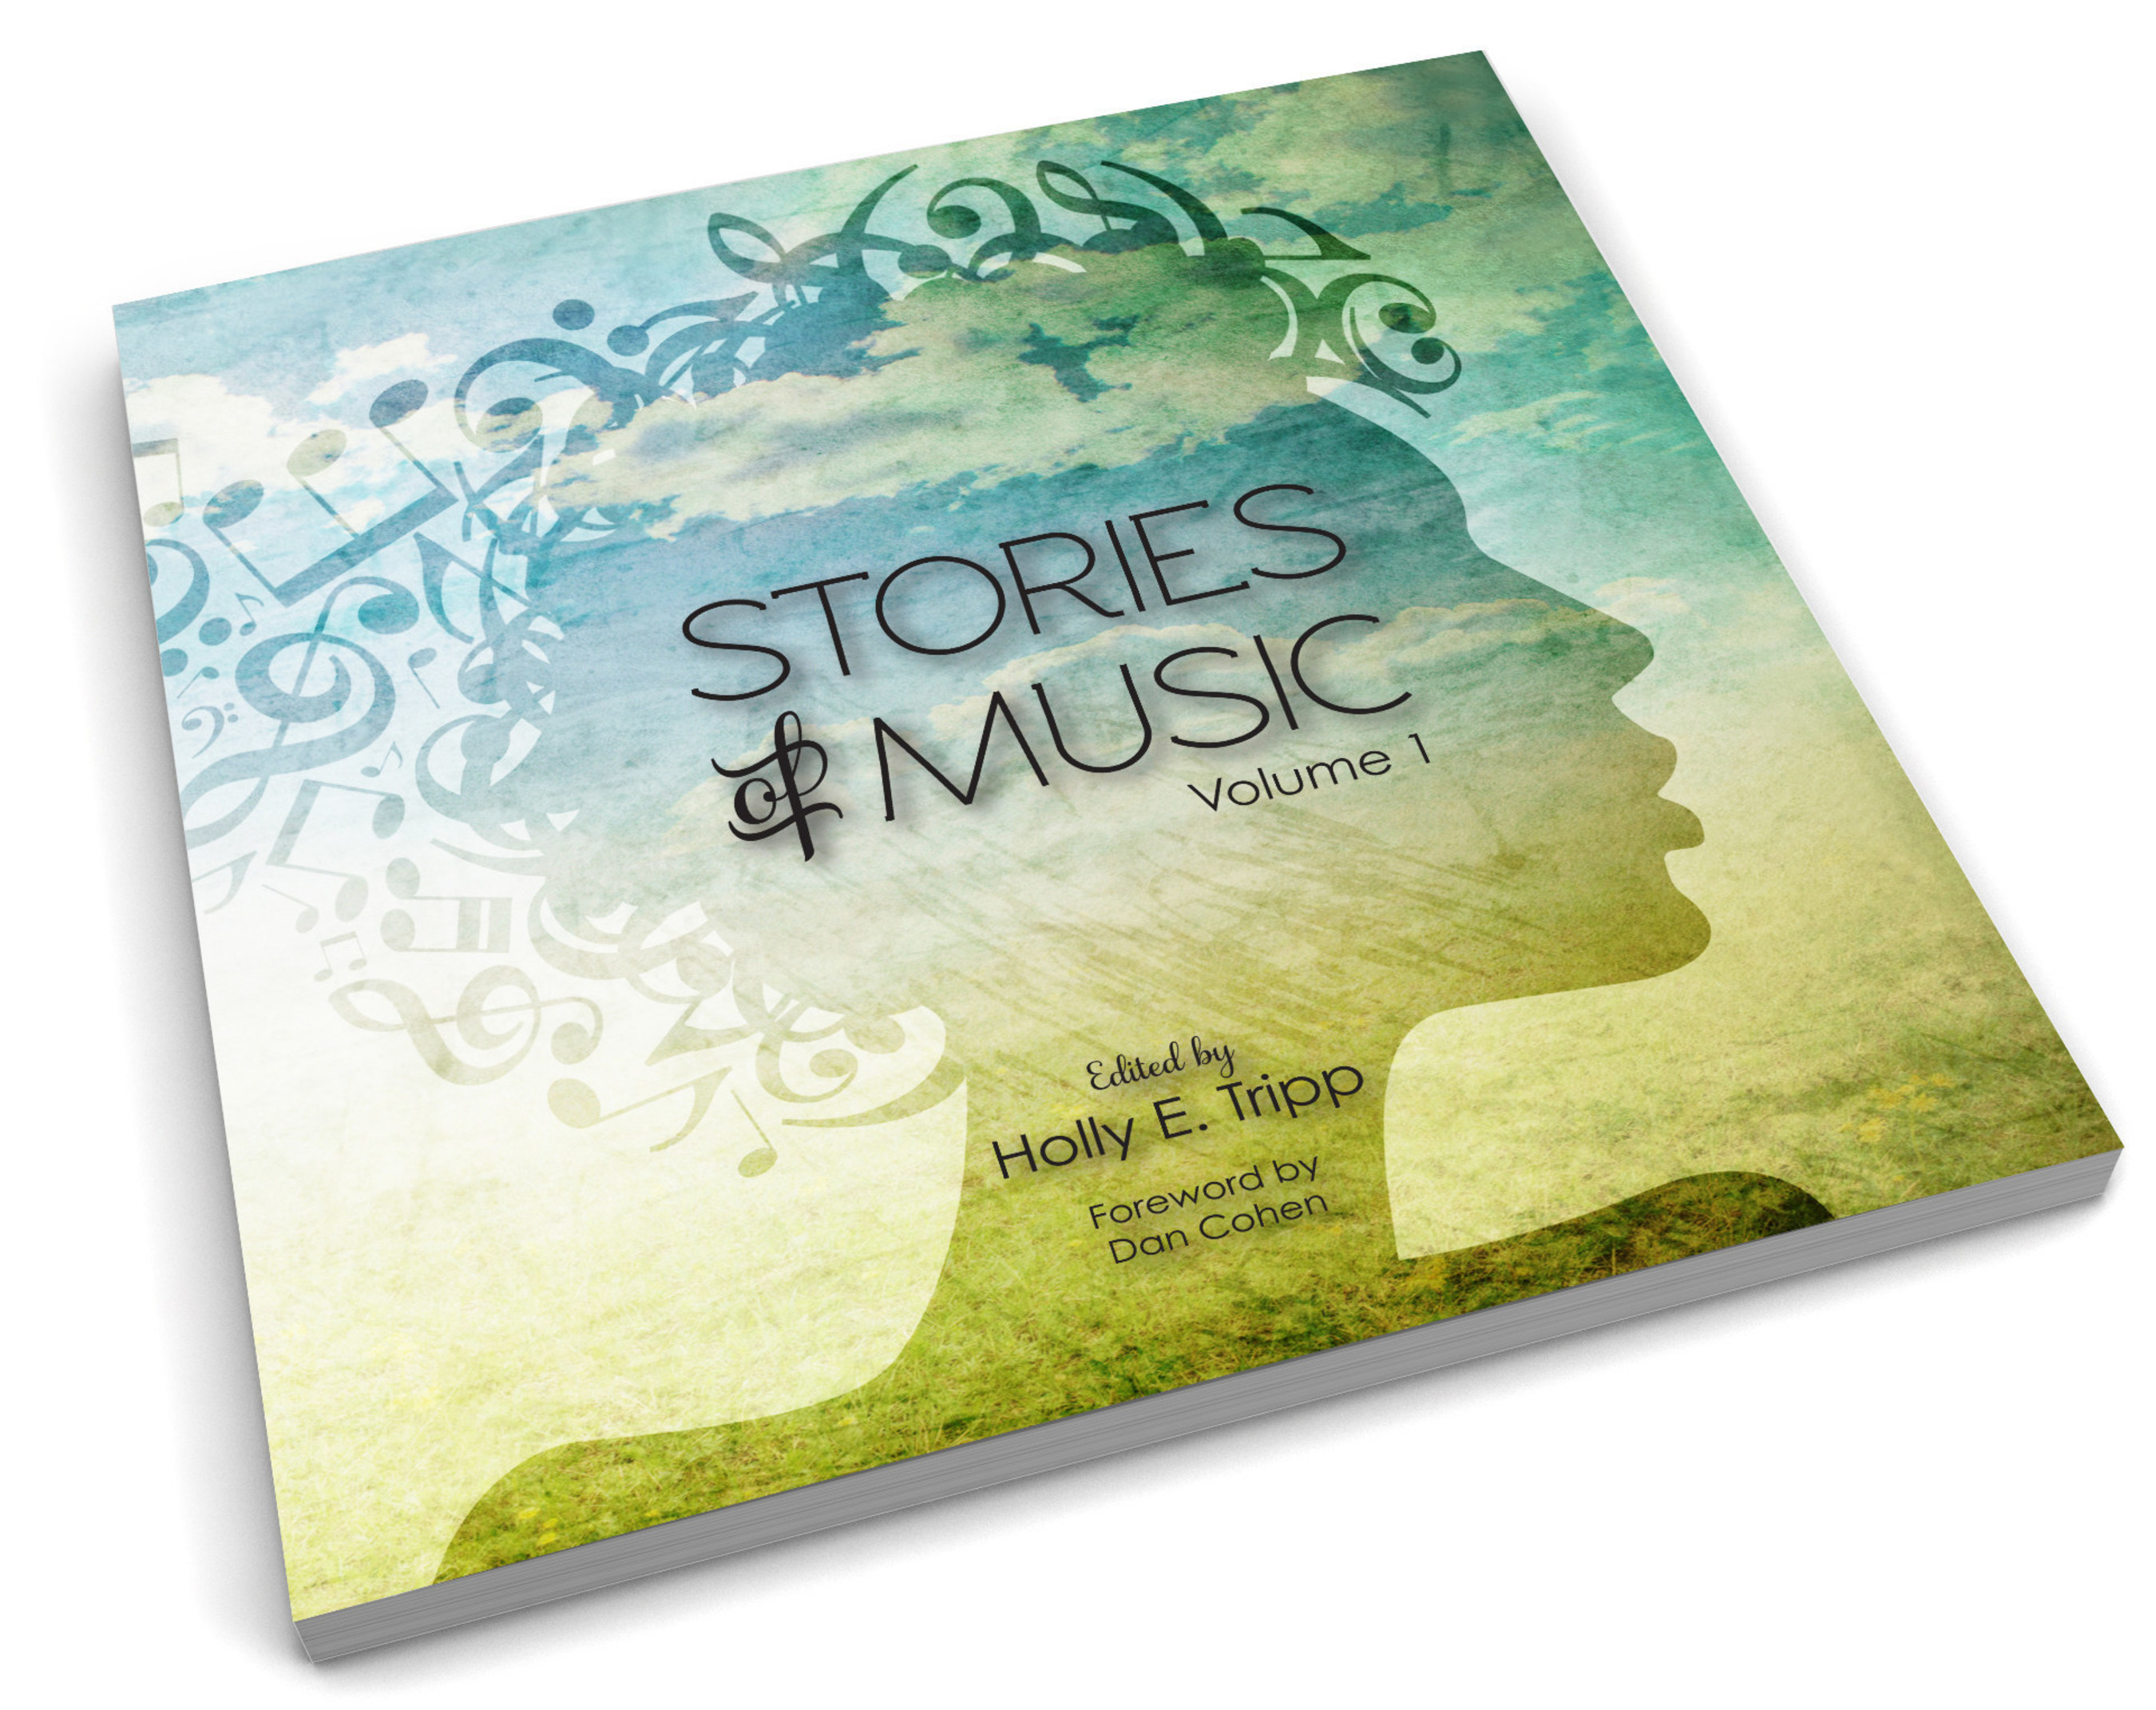 Timbre Press Announces New Multimedia Book, Stories of Music, Which Highlights Music's Impact on the Human Experience and Helps Increase Access to Music